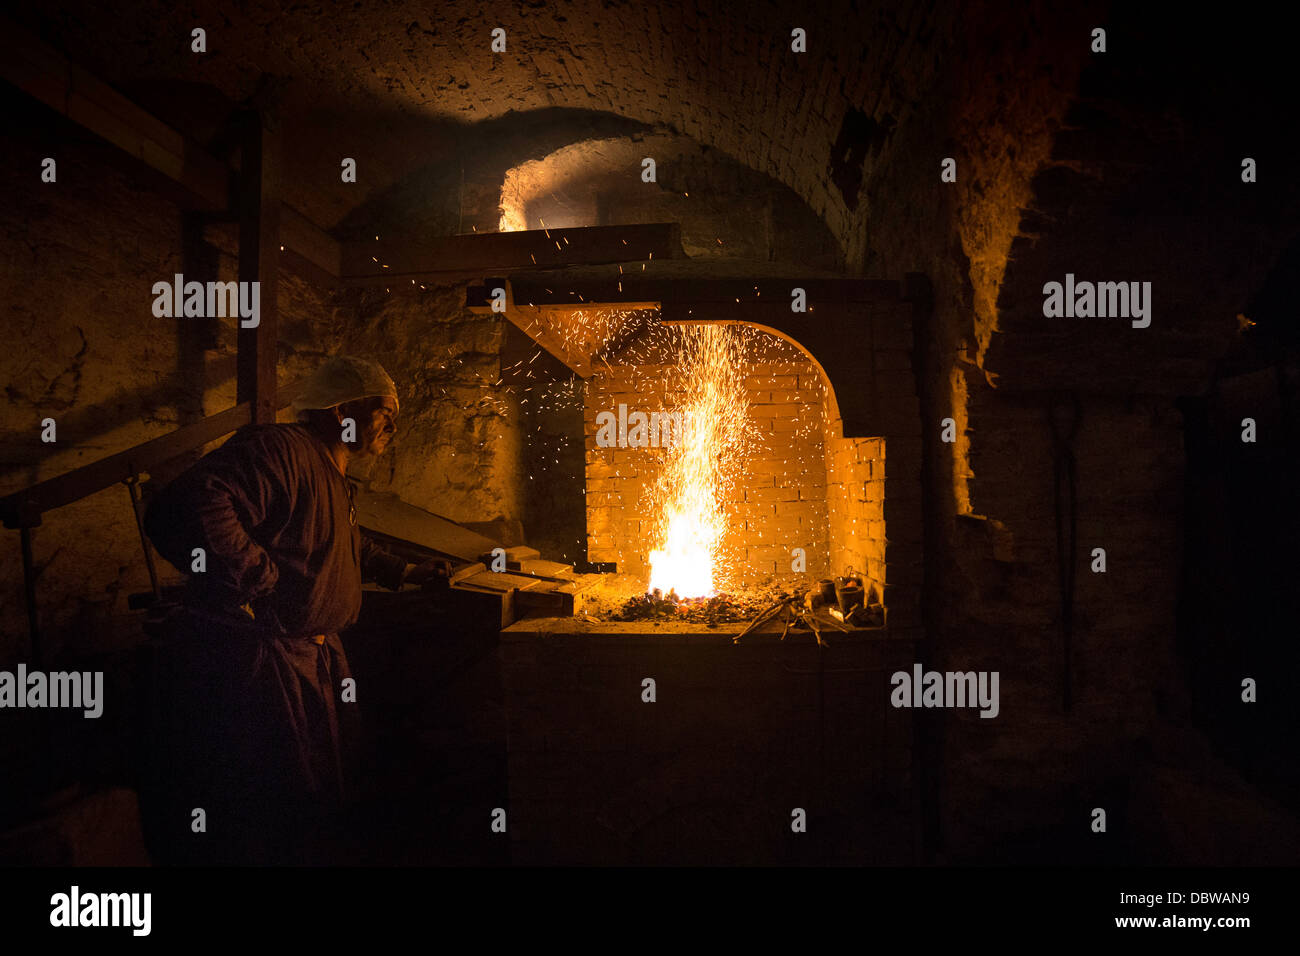 Blacksmith work with fire - Stock Image